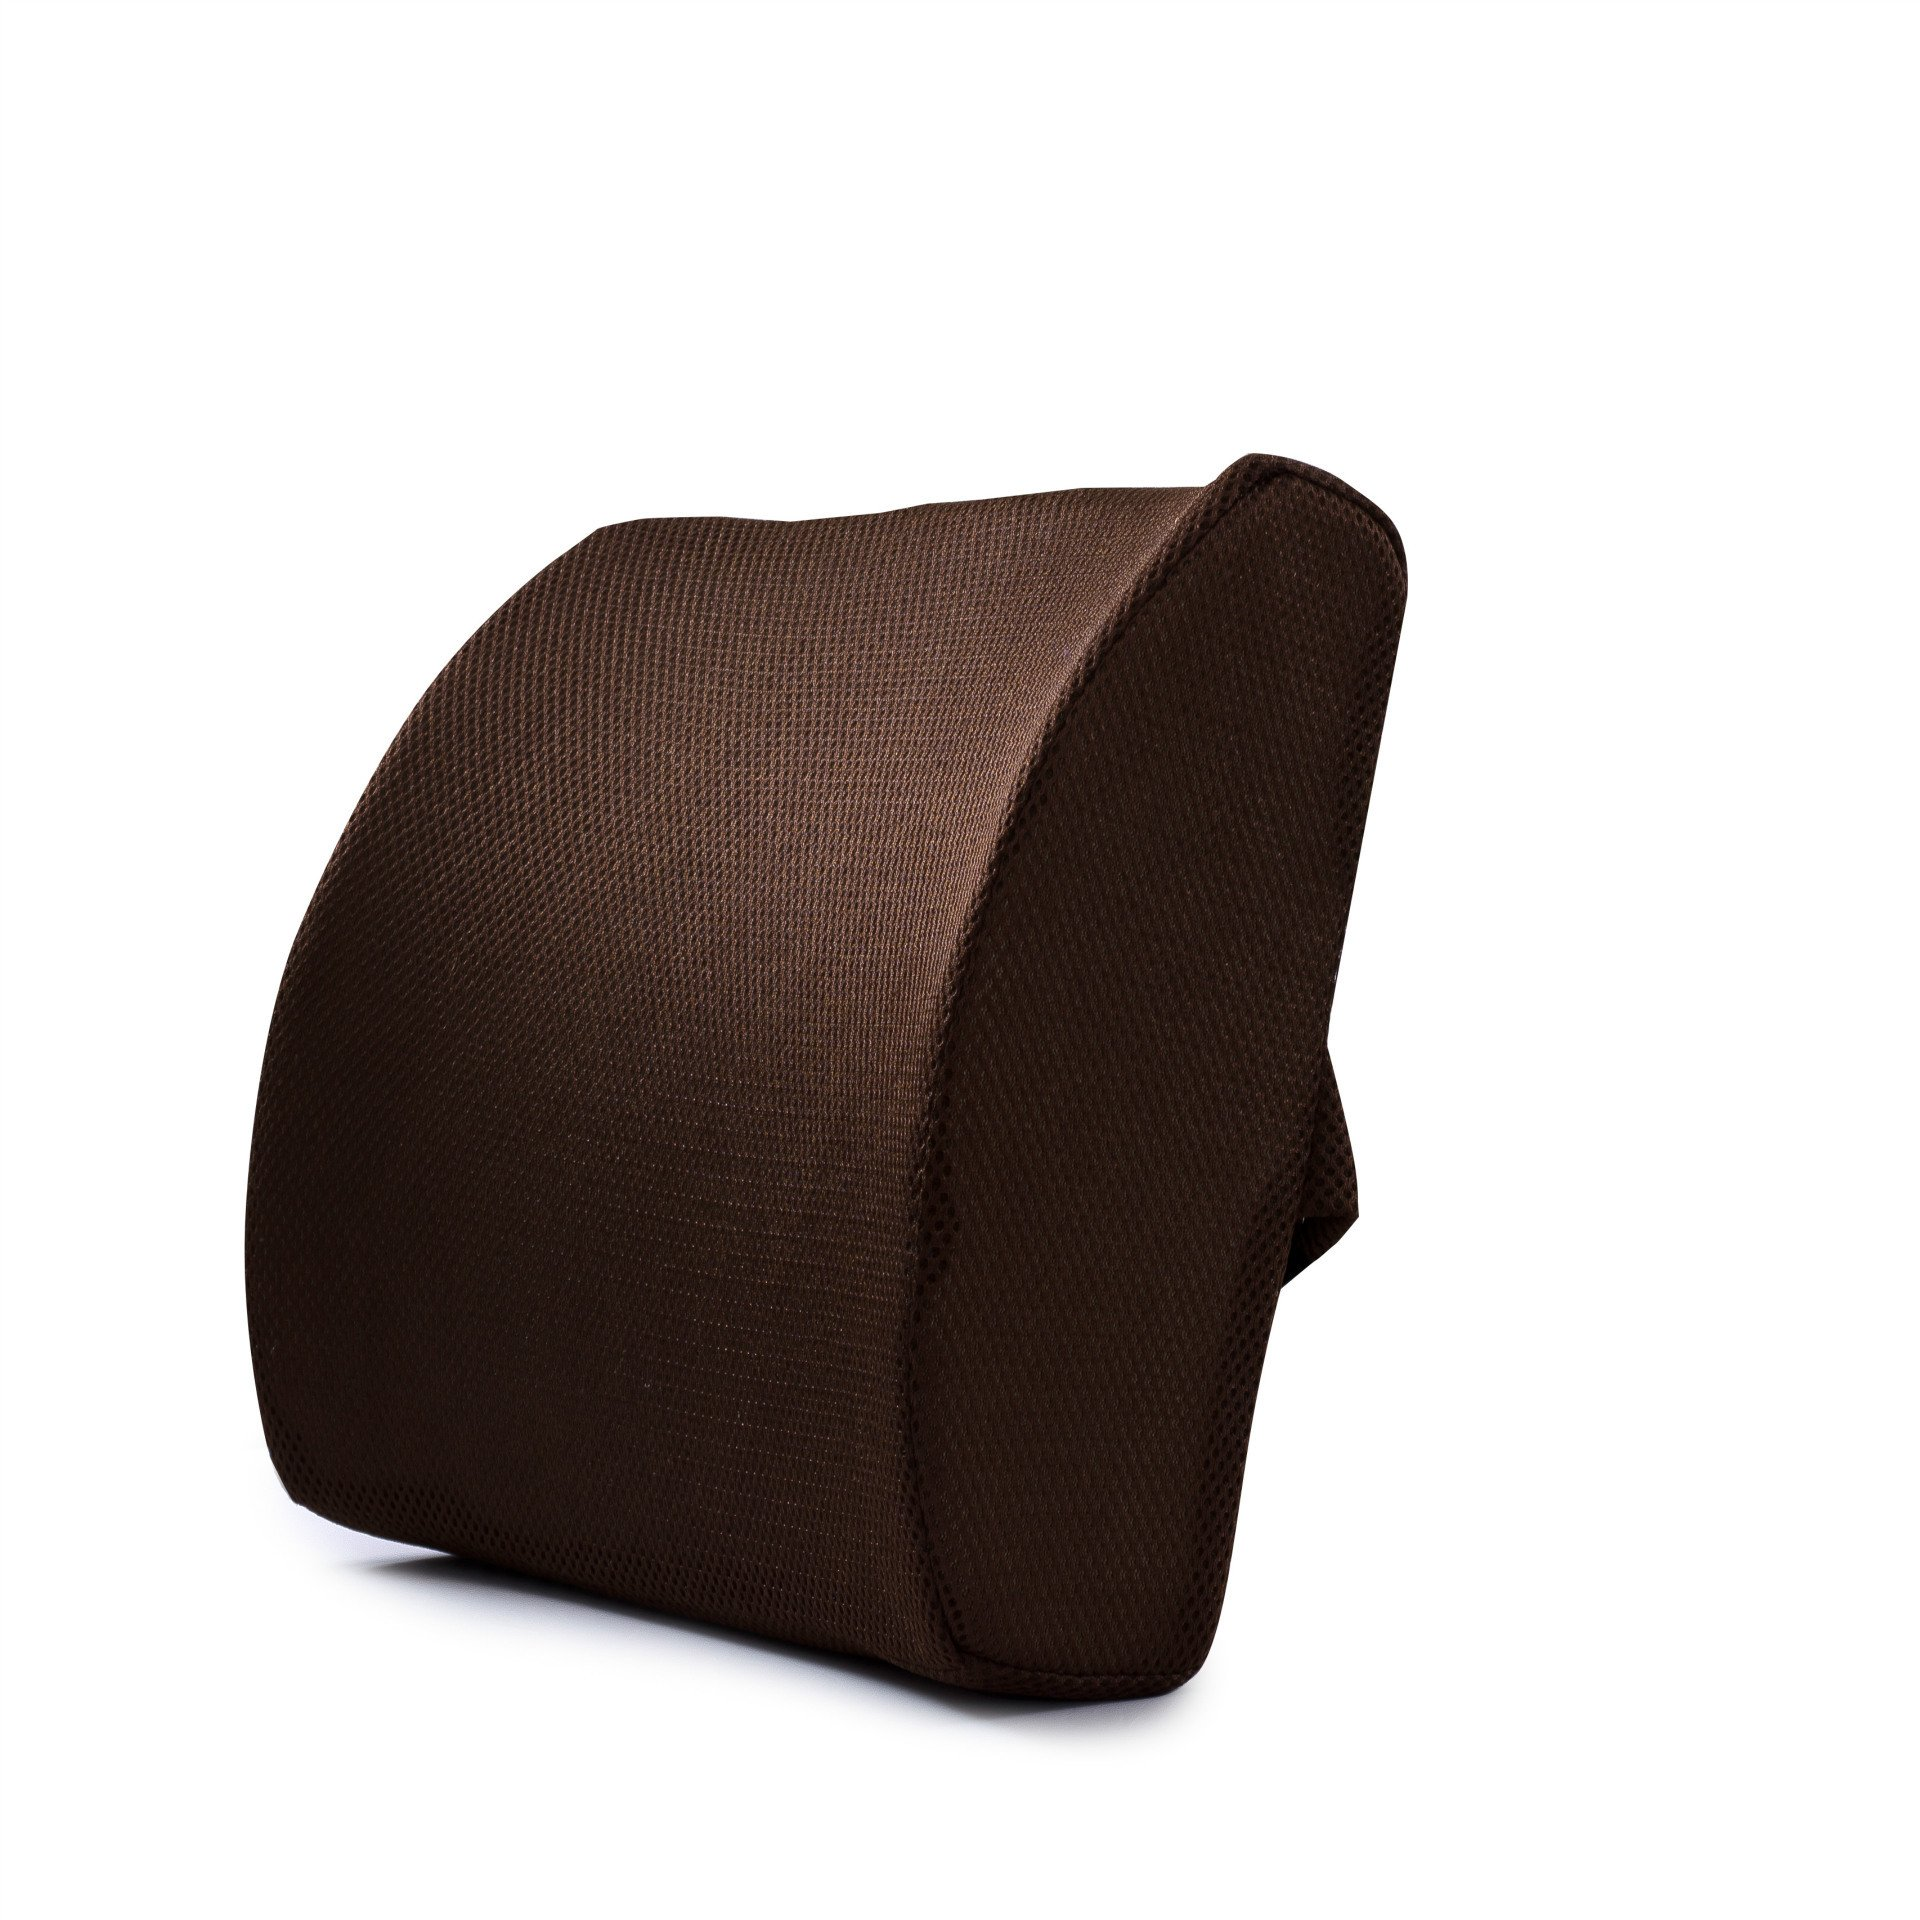 Details About Wislect Lumbar Support Pillow Premium Car Back Support Cushion Best Outdoor